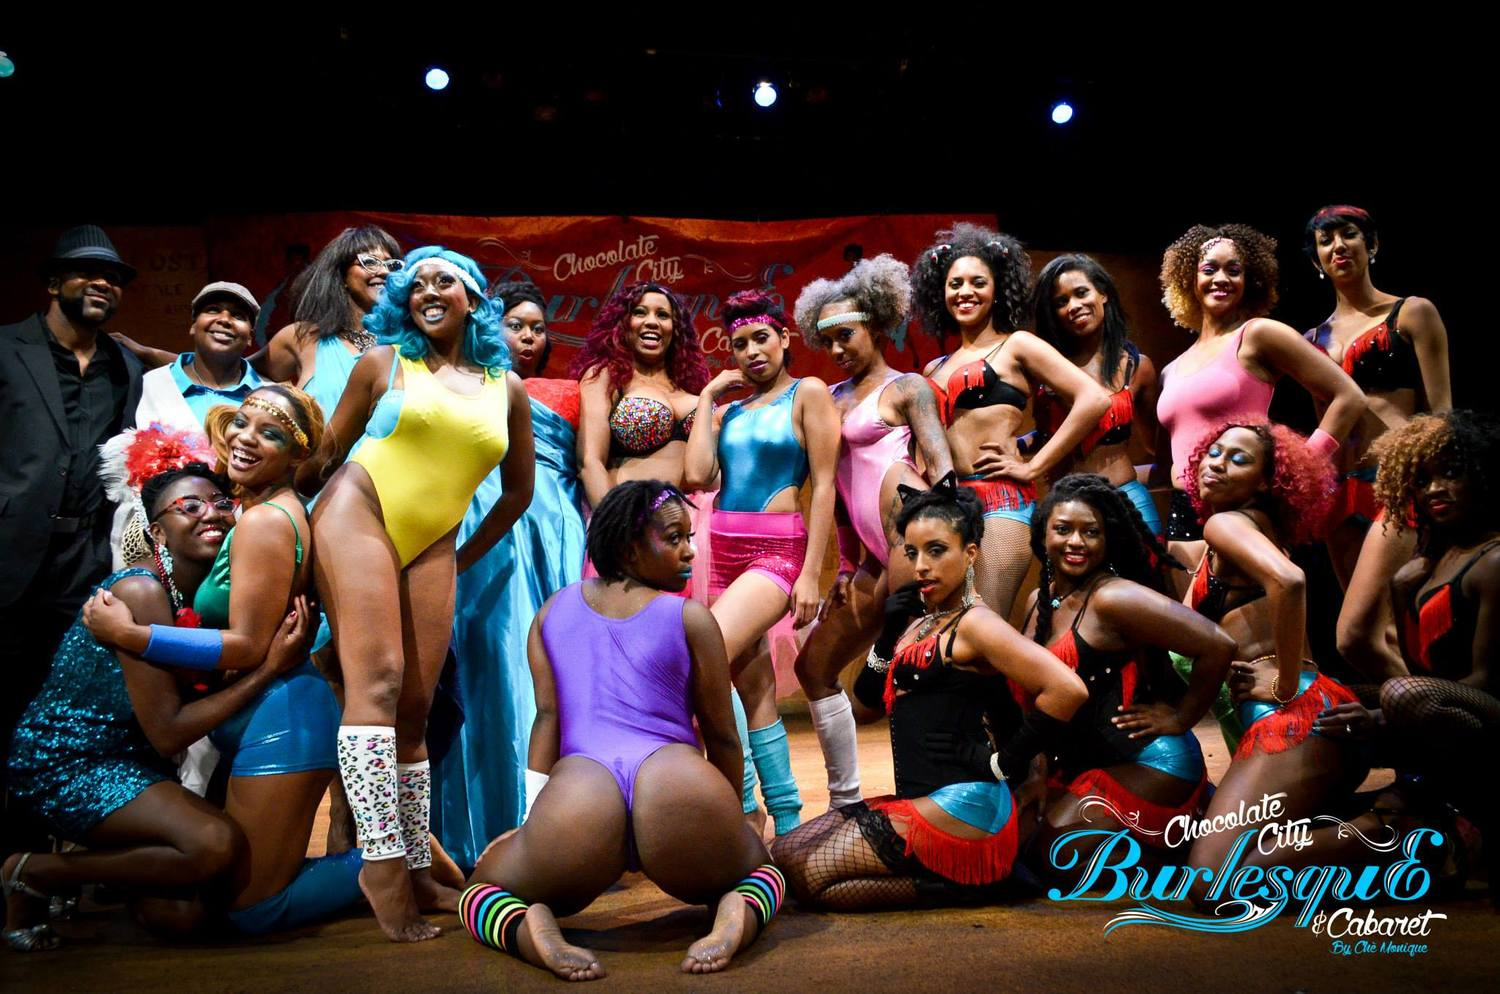 Meet Us — Chocolate City Burlesque & Cabaret